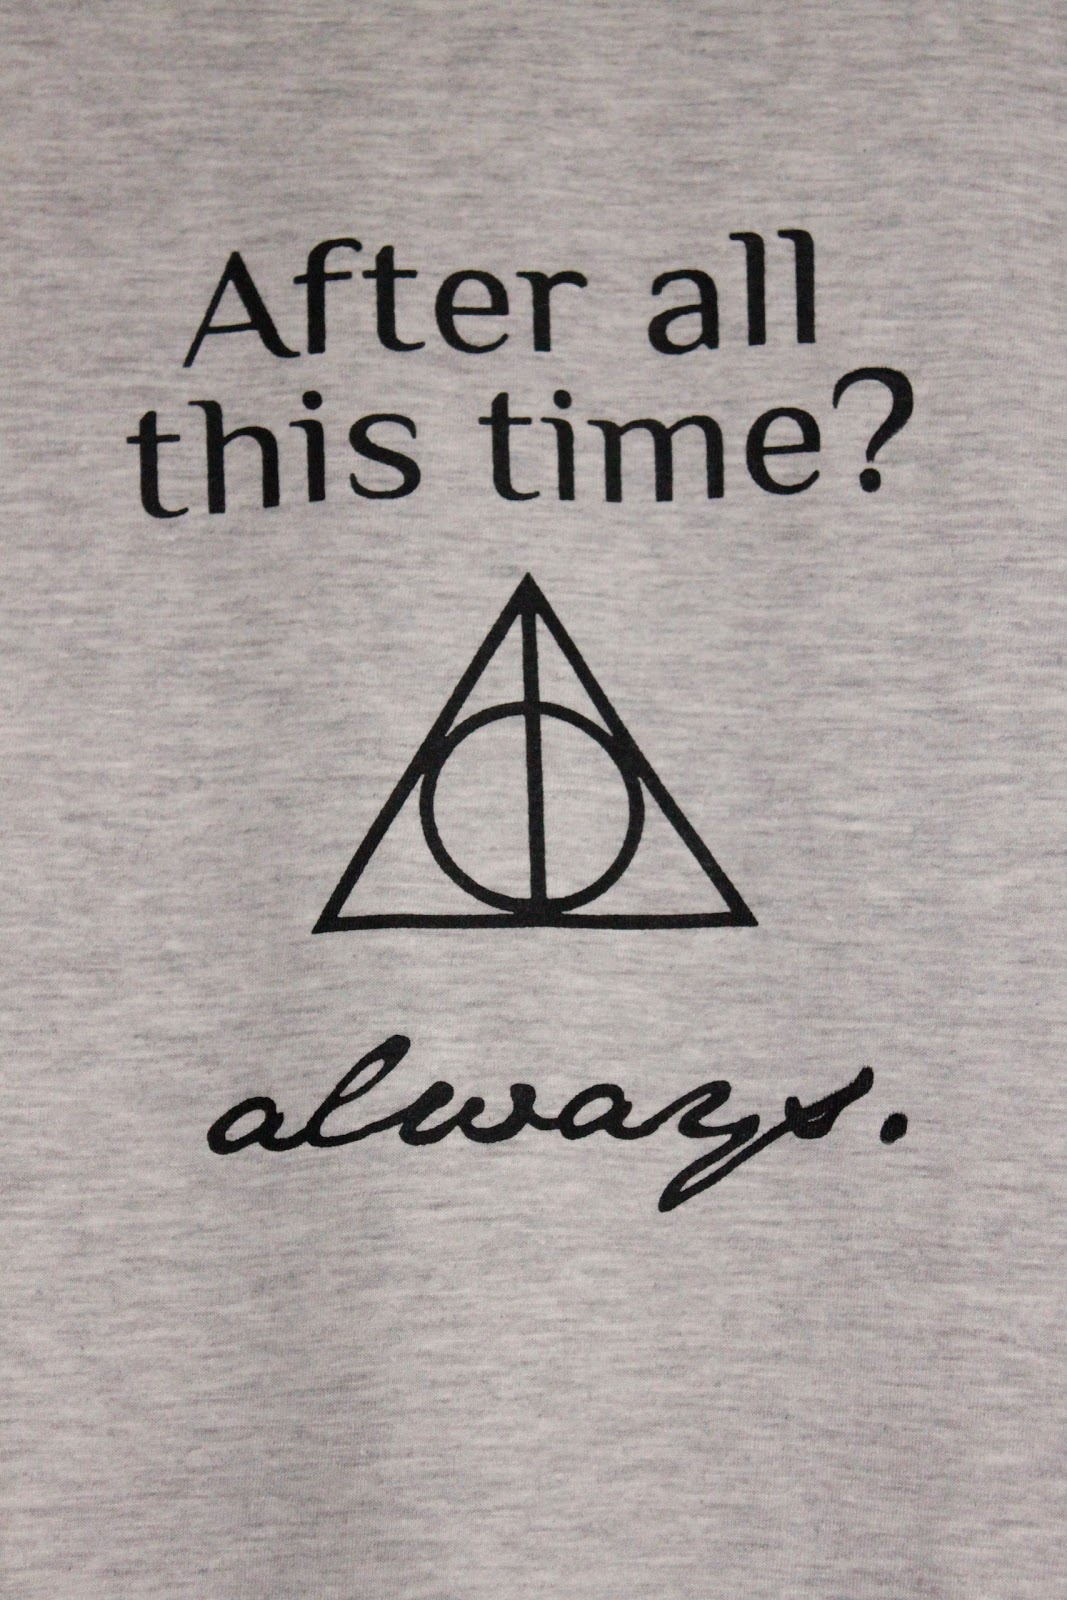 Quotes About Harry Potter Series 32 Quotes